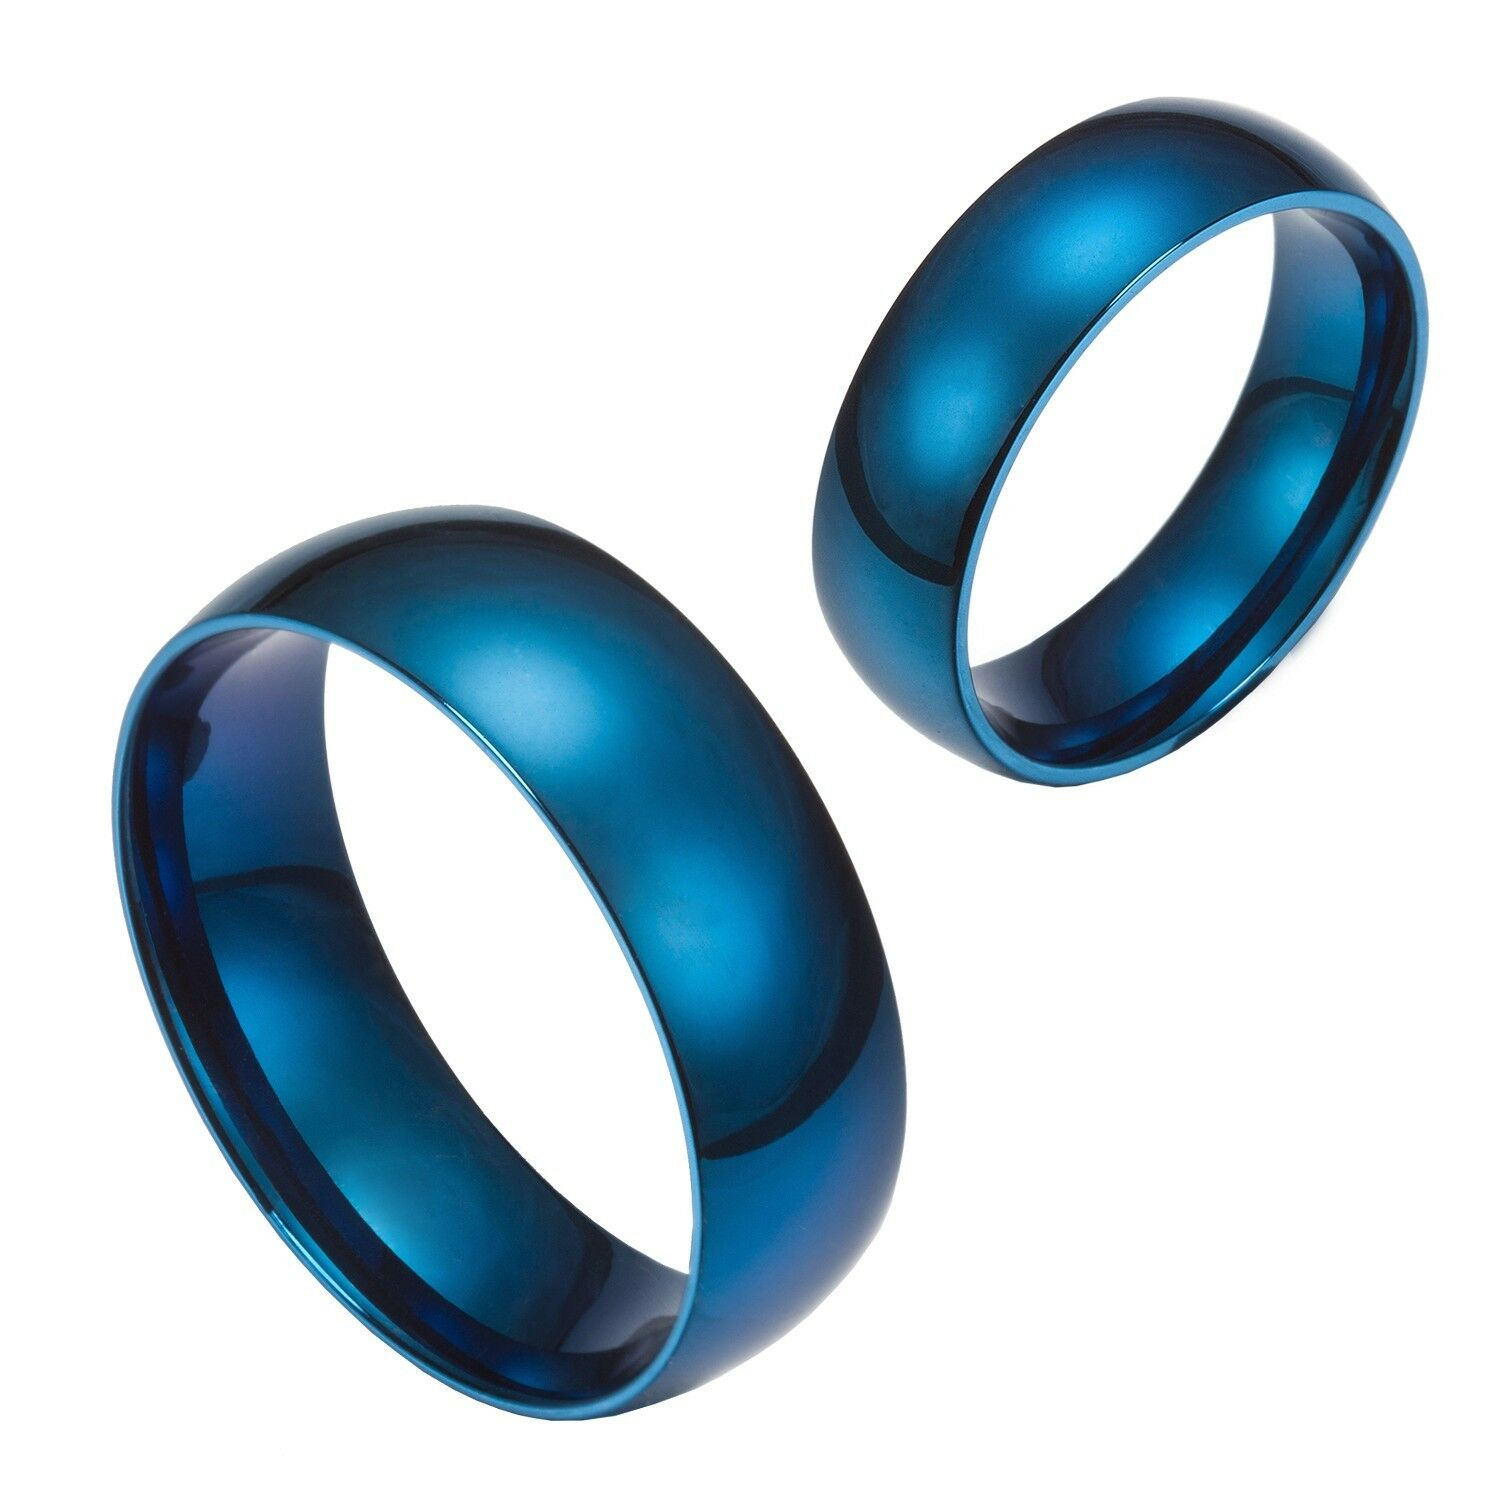 Wedding Band Stainless Steel 8mm: 6mm 8mm Blue Stainless Steel Comfort Fit Wedding Band Ring